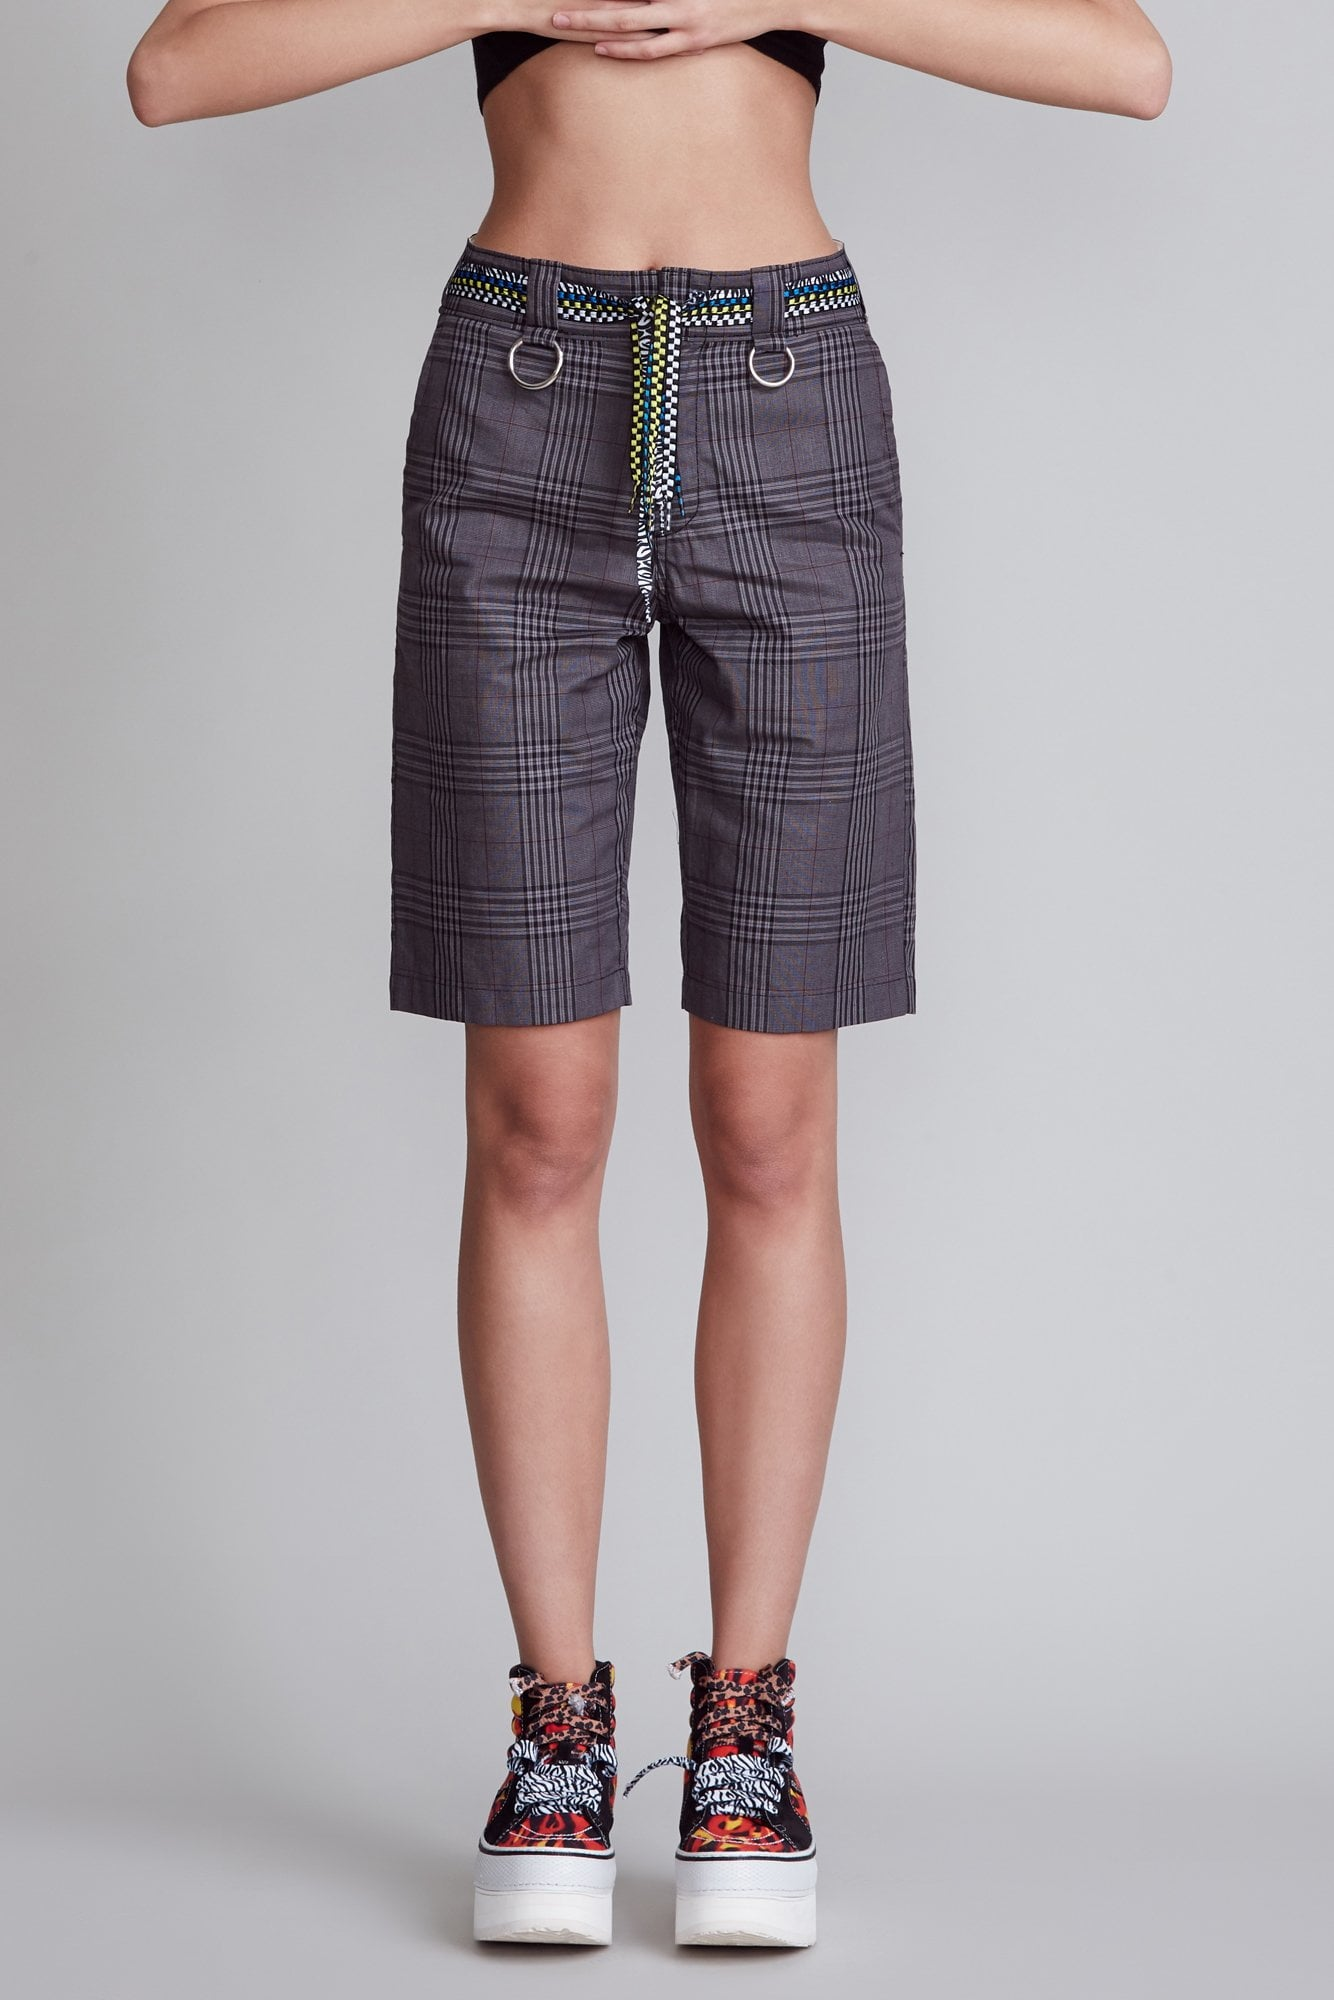 Slouch Shorts with Rings - Grey Glenplaid